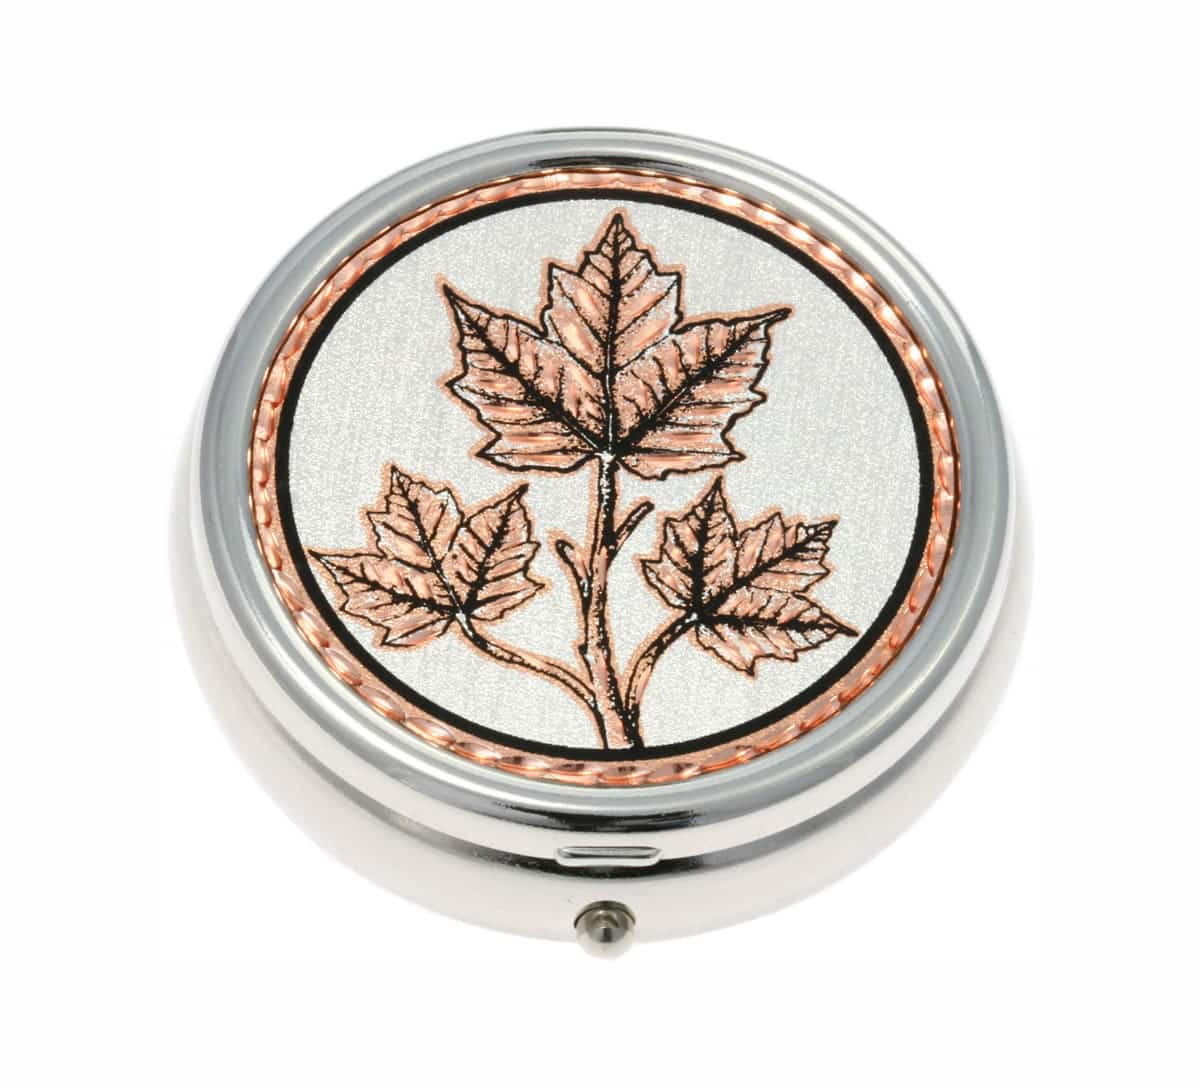 Unique Handmade Gifts Ideas, Maple Leaves Pill Boxes